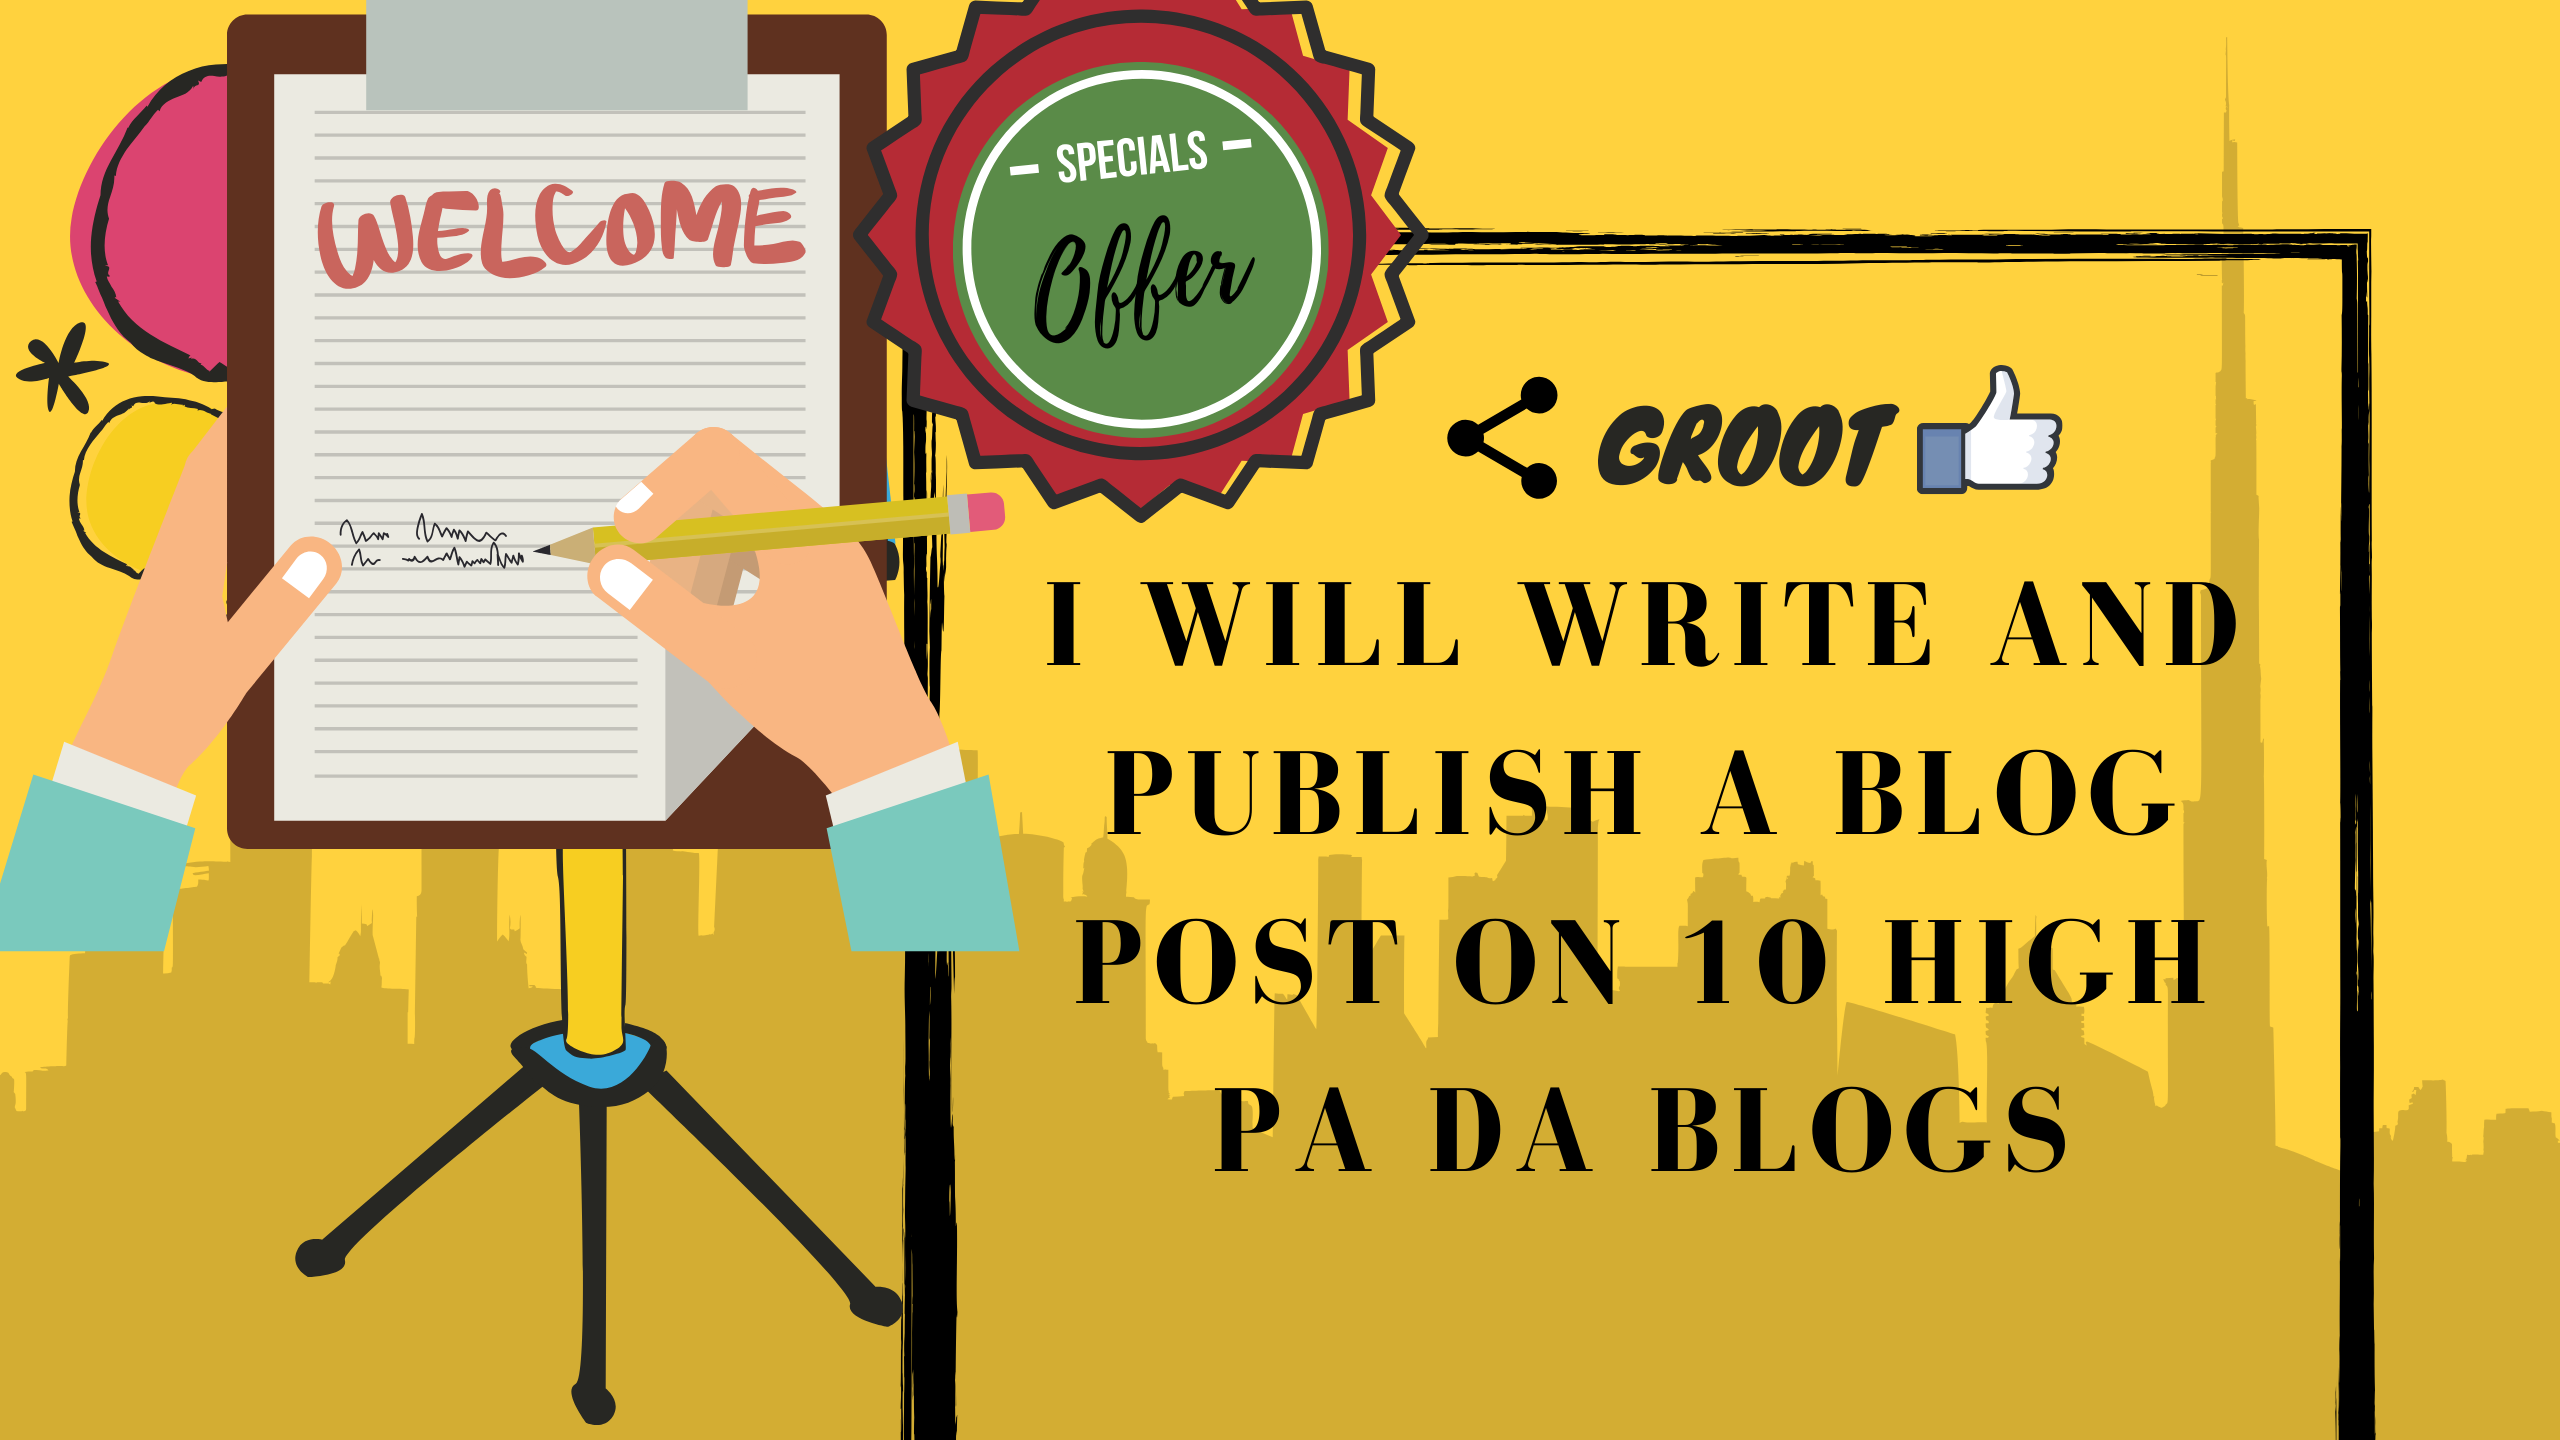 I will write and publish a blog post on 10 high PA DA Blogs